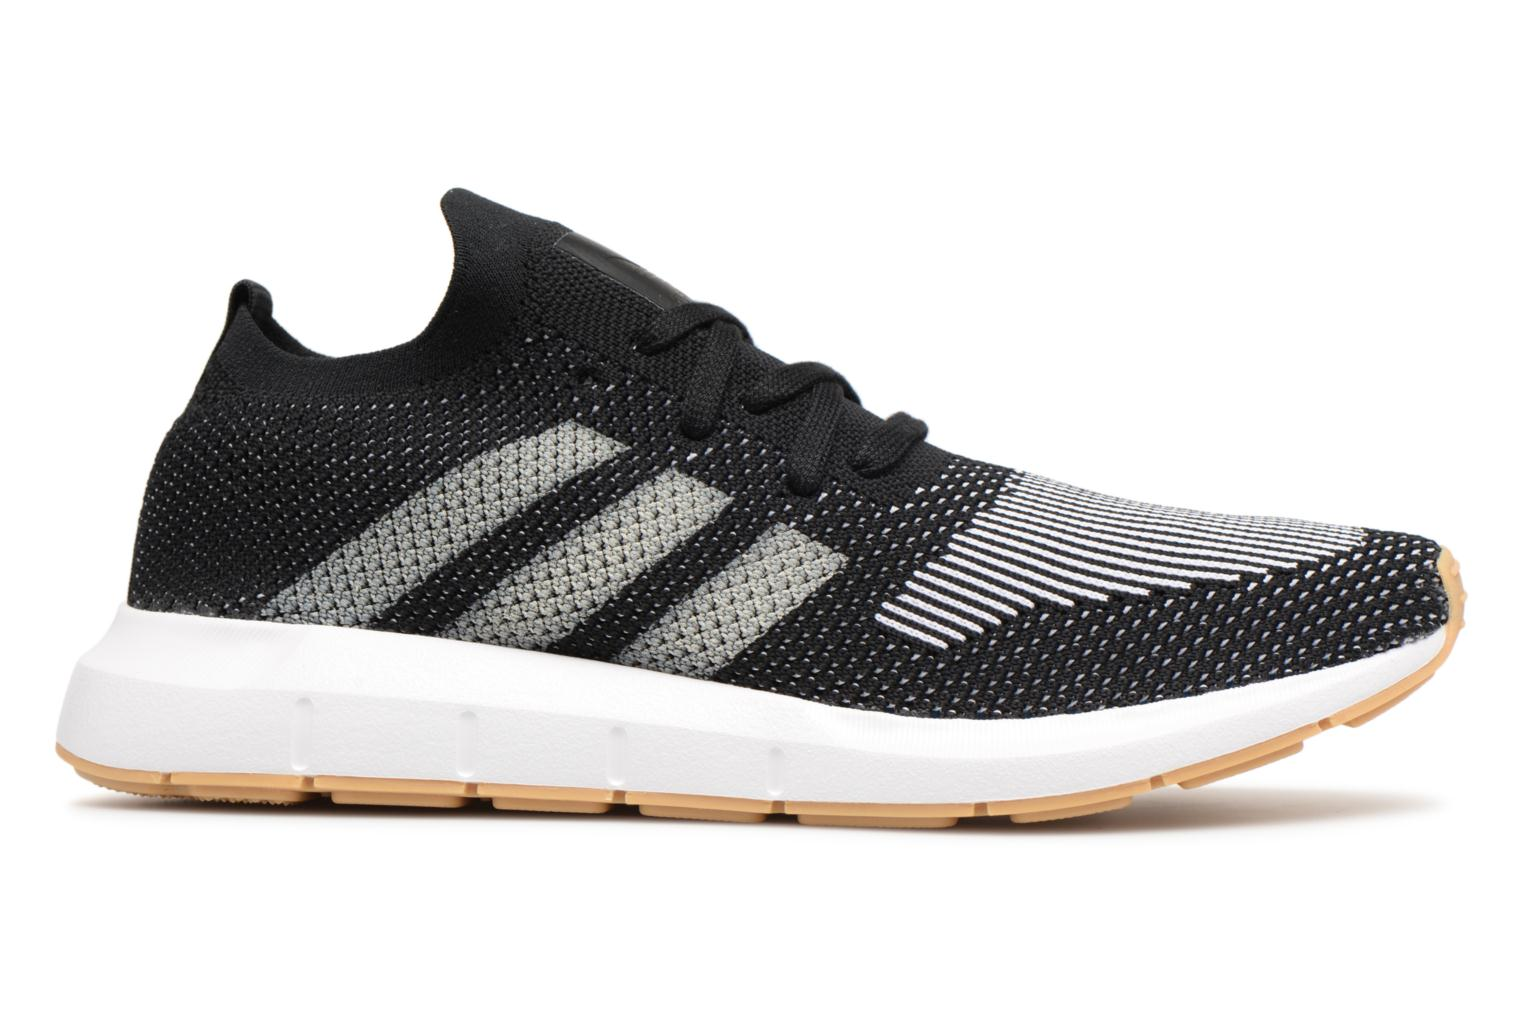 Blacas Ftwbla Adidas Run Pk Originals Noiess Swift YxX6q7wXr